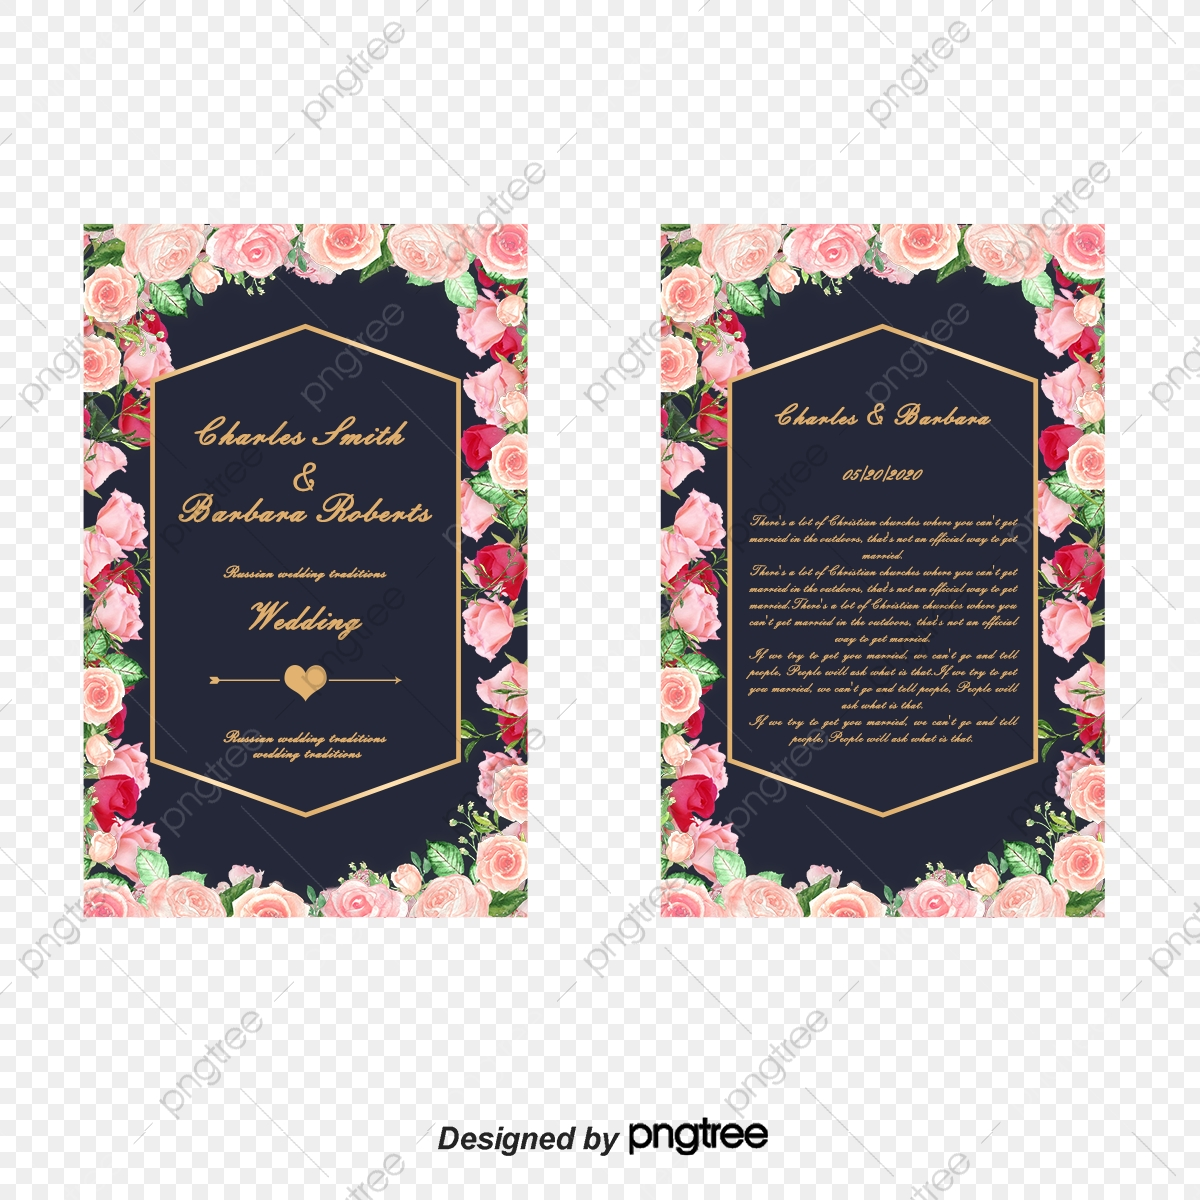 Cartoon Wedding Invitation Design Cartoon Vector Wedding